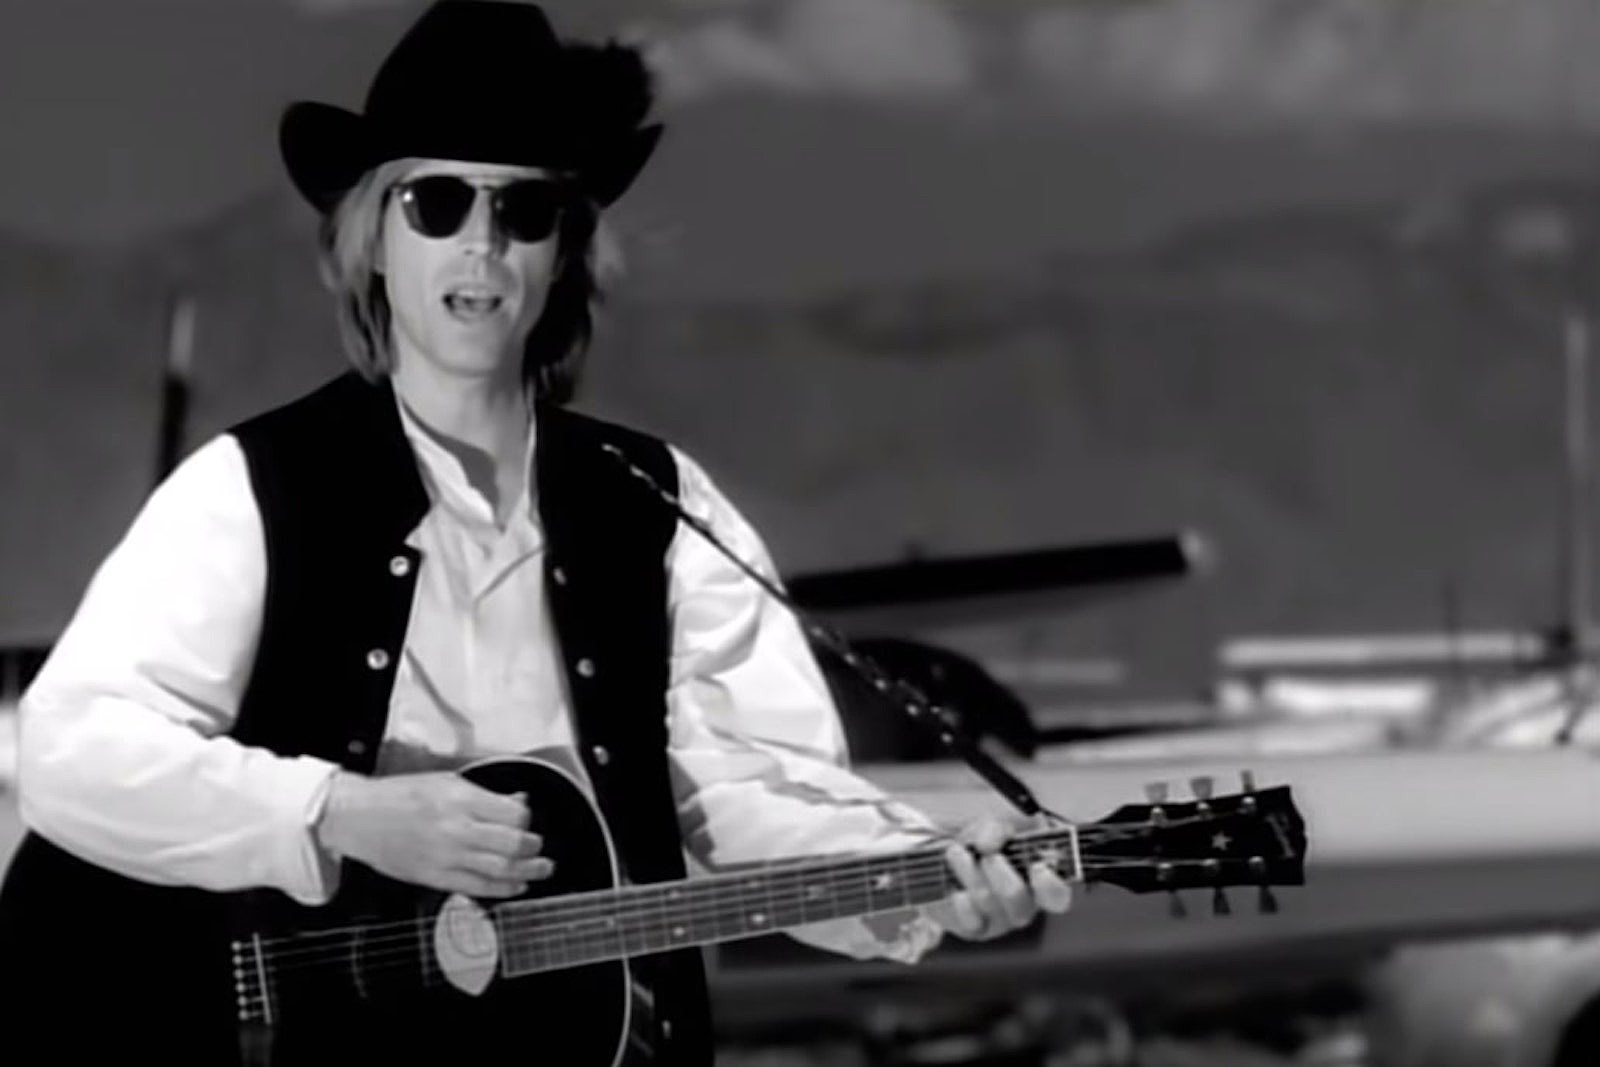 How Tom Petty's 'Learning to Fly' Became a Quiet Redemption Song